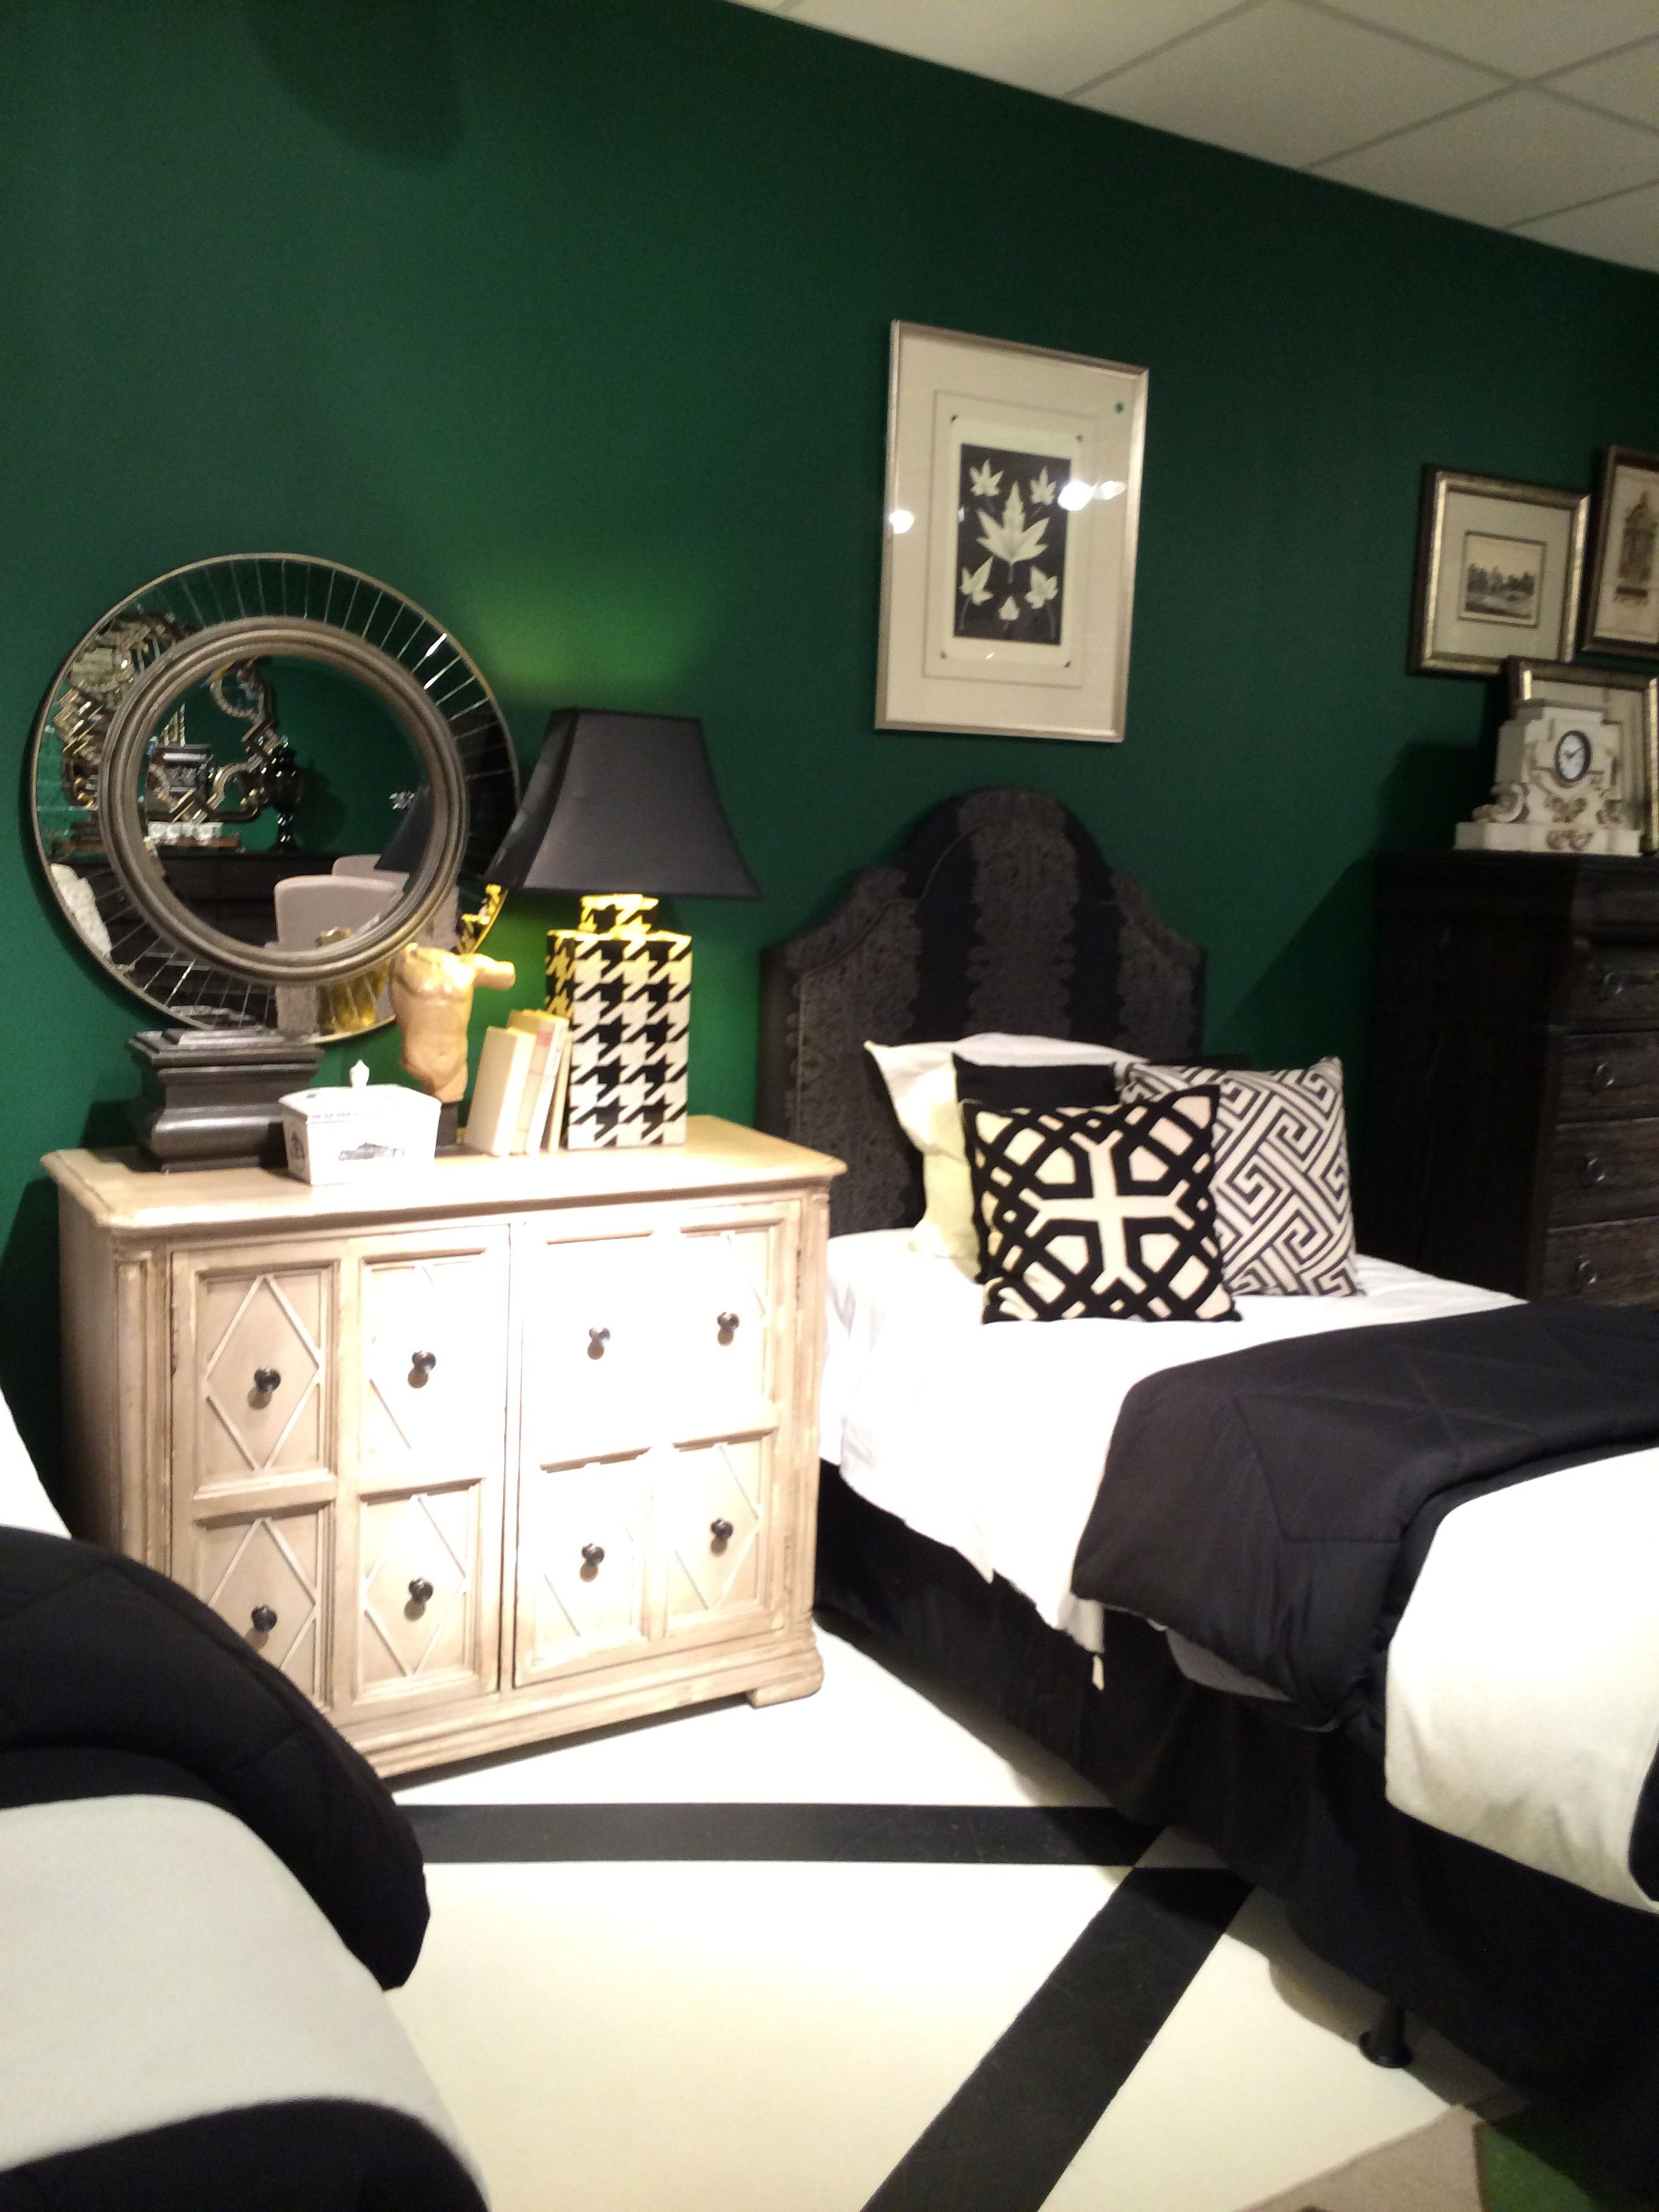 British Racing Green Walls Nicely Contrast With The White